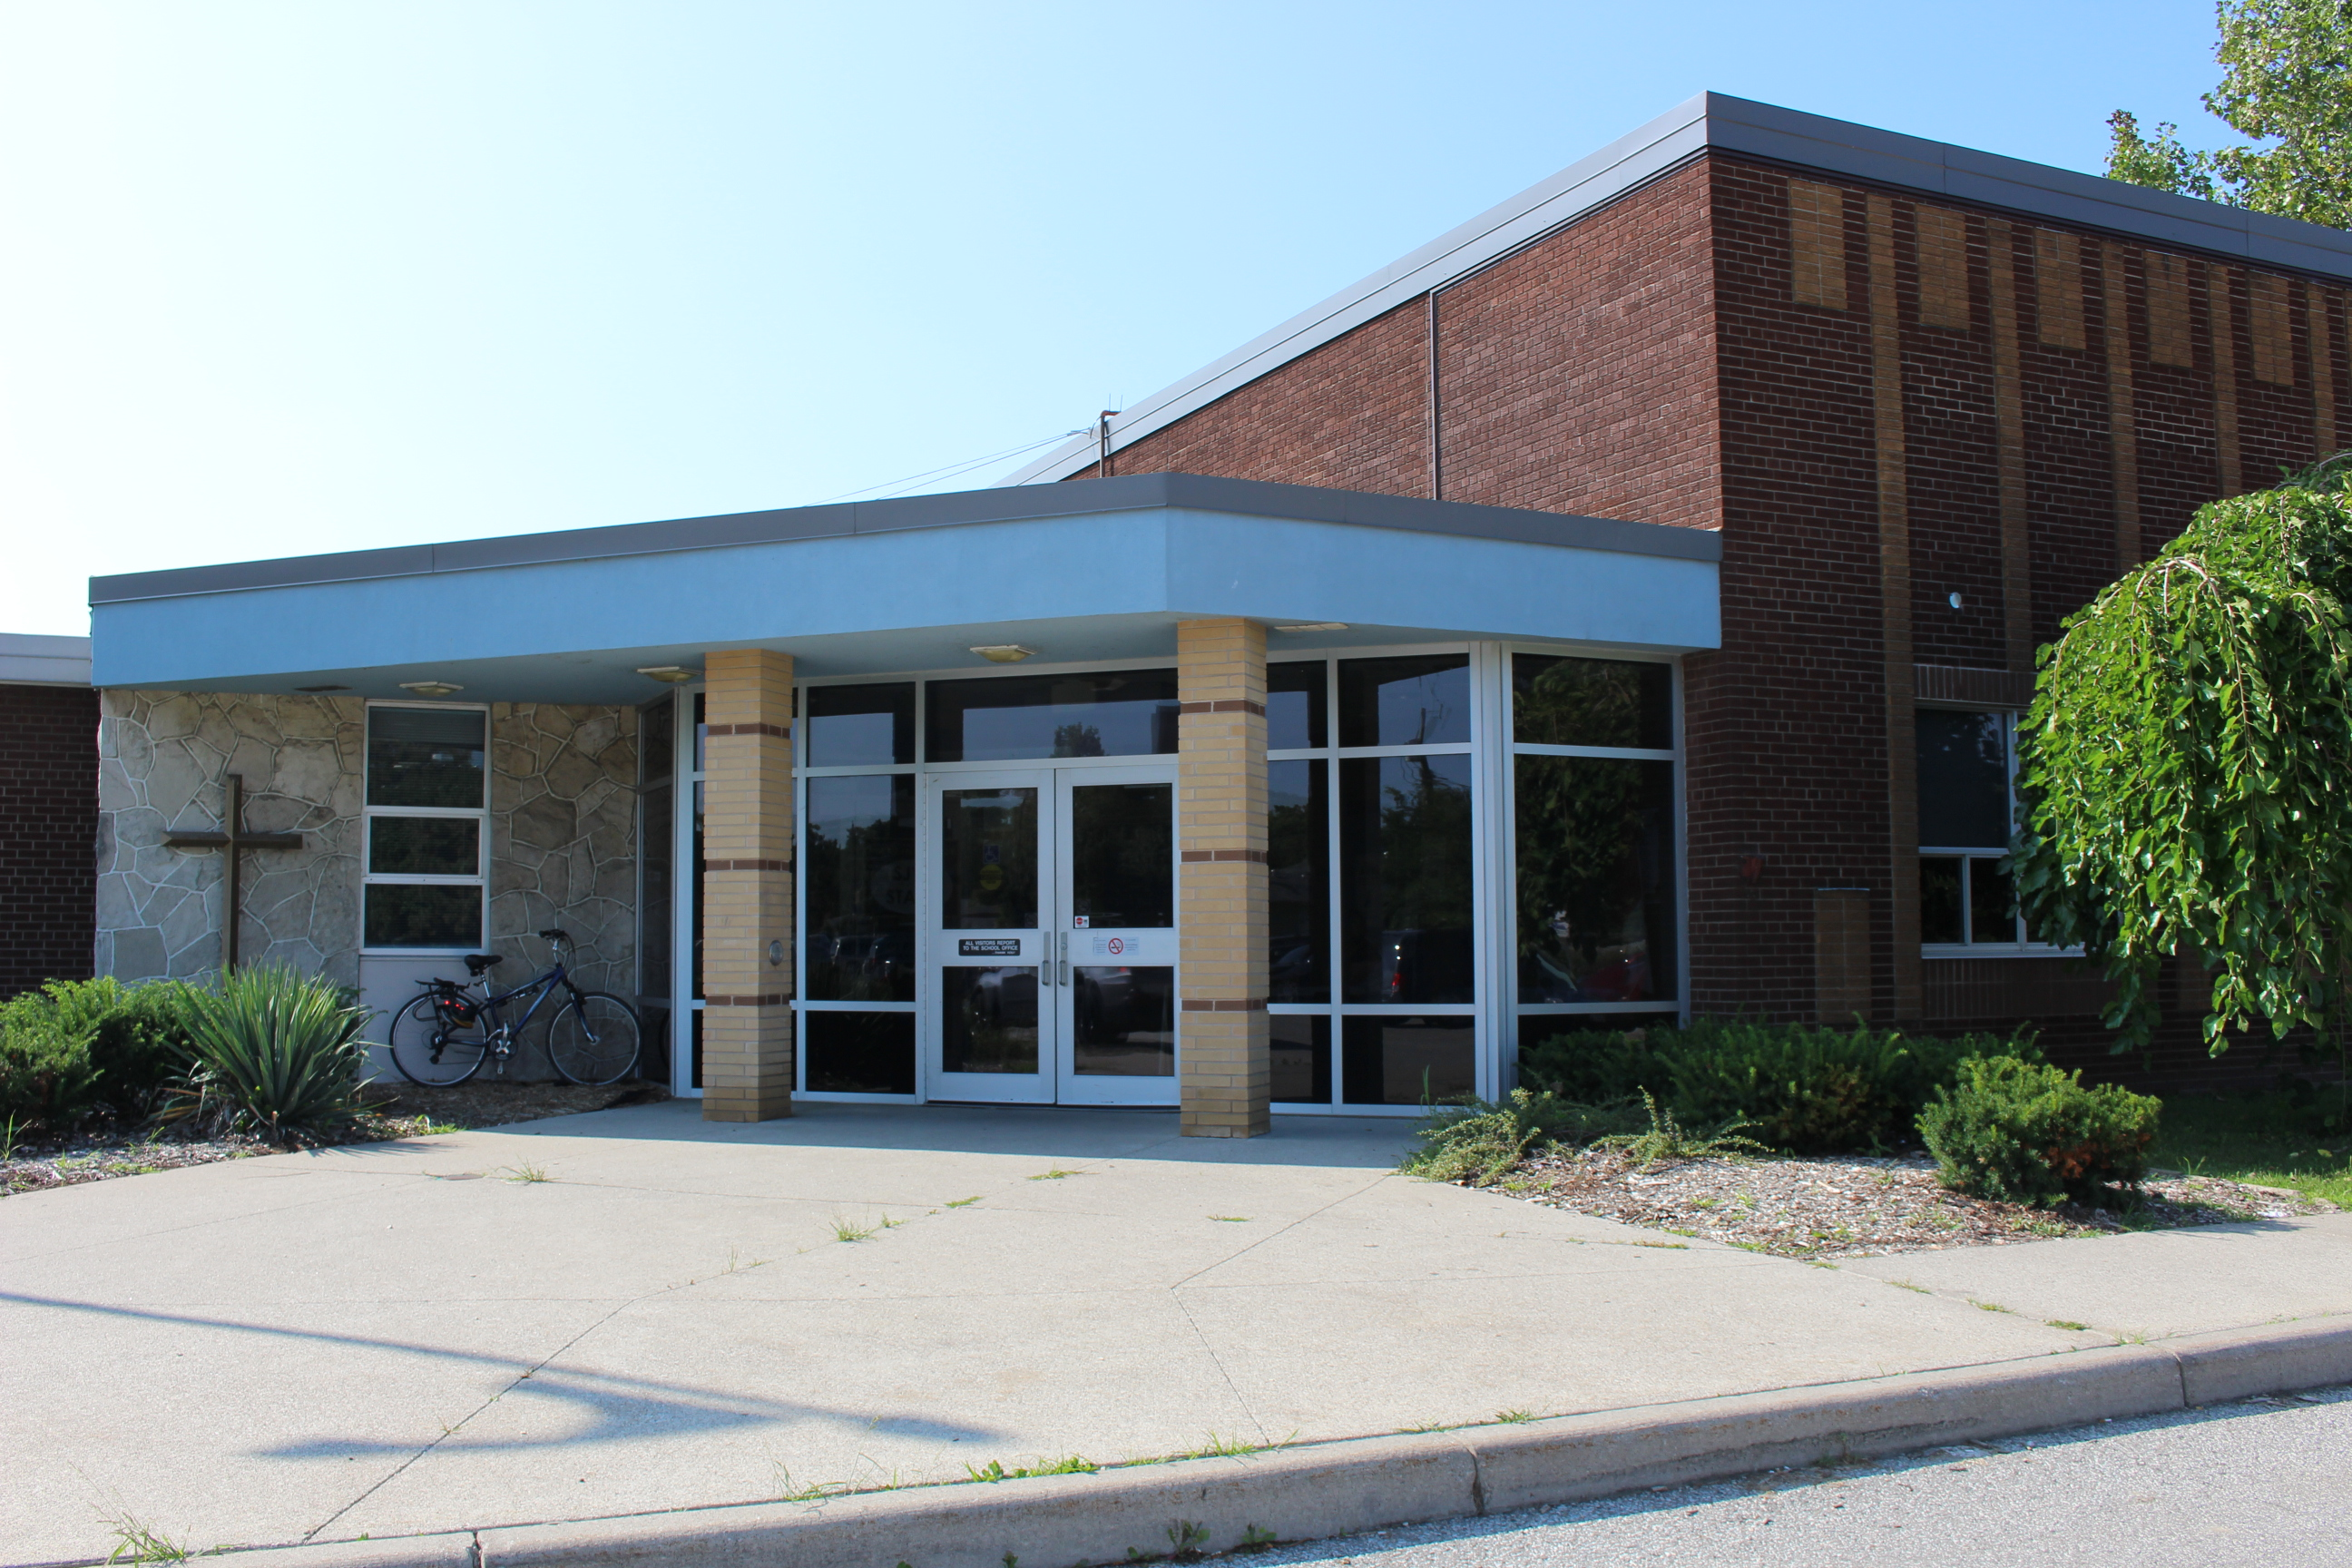 St. John Vianney Catholic School in Windsor, August 25 2014. (Photo by Adelle Loiselle.)